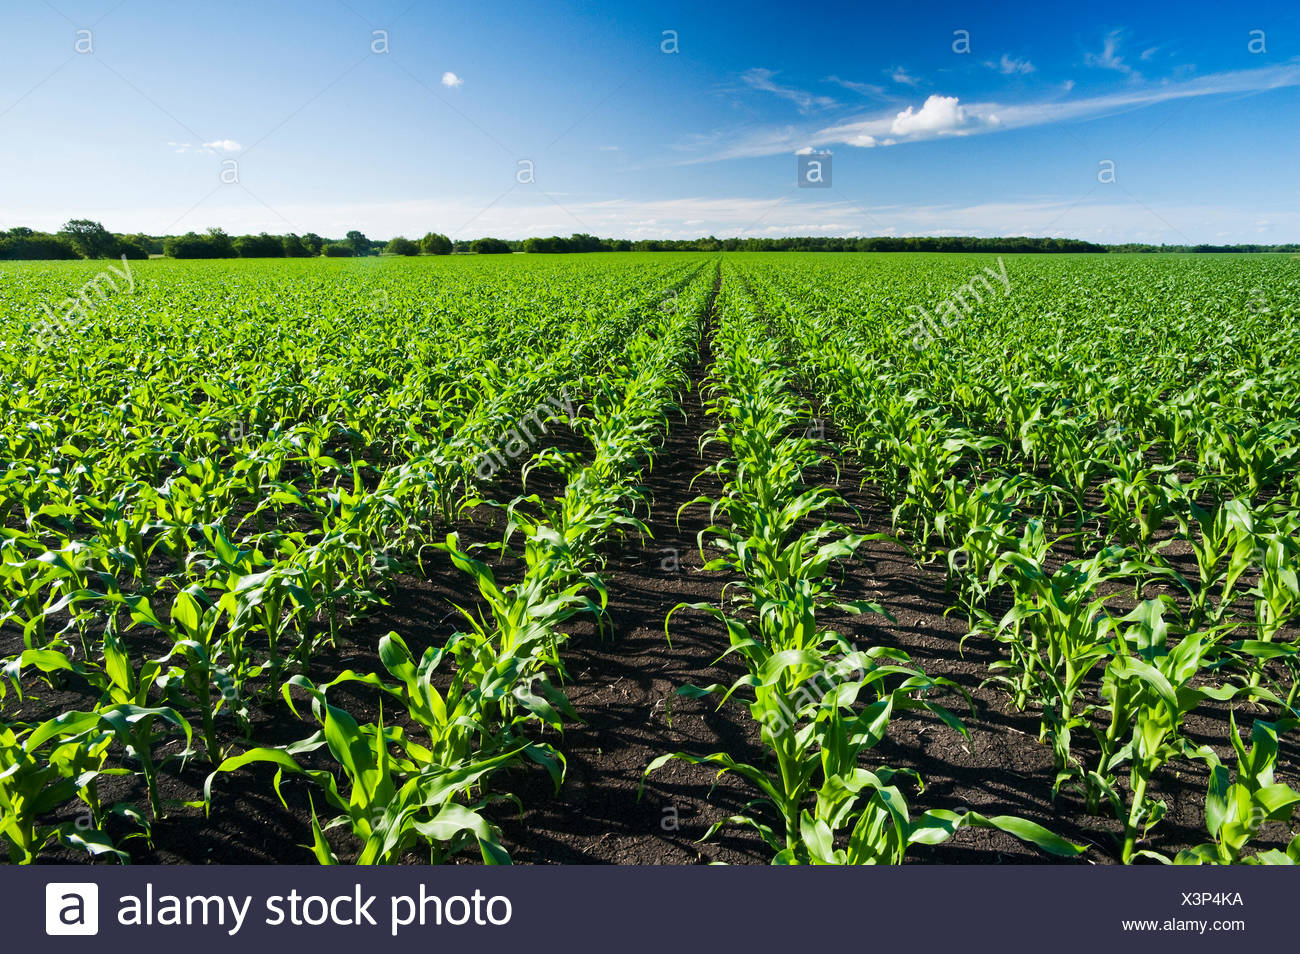 a field of feed/grain corn stretches to the horizon, near Dugald, Manitoba, Canada - Stock Image